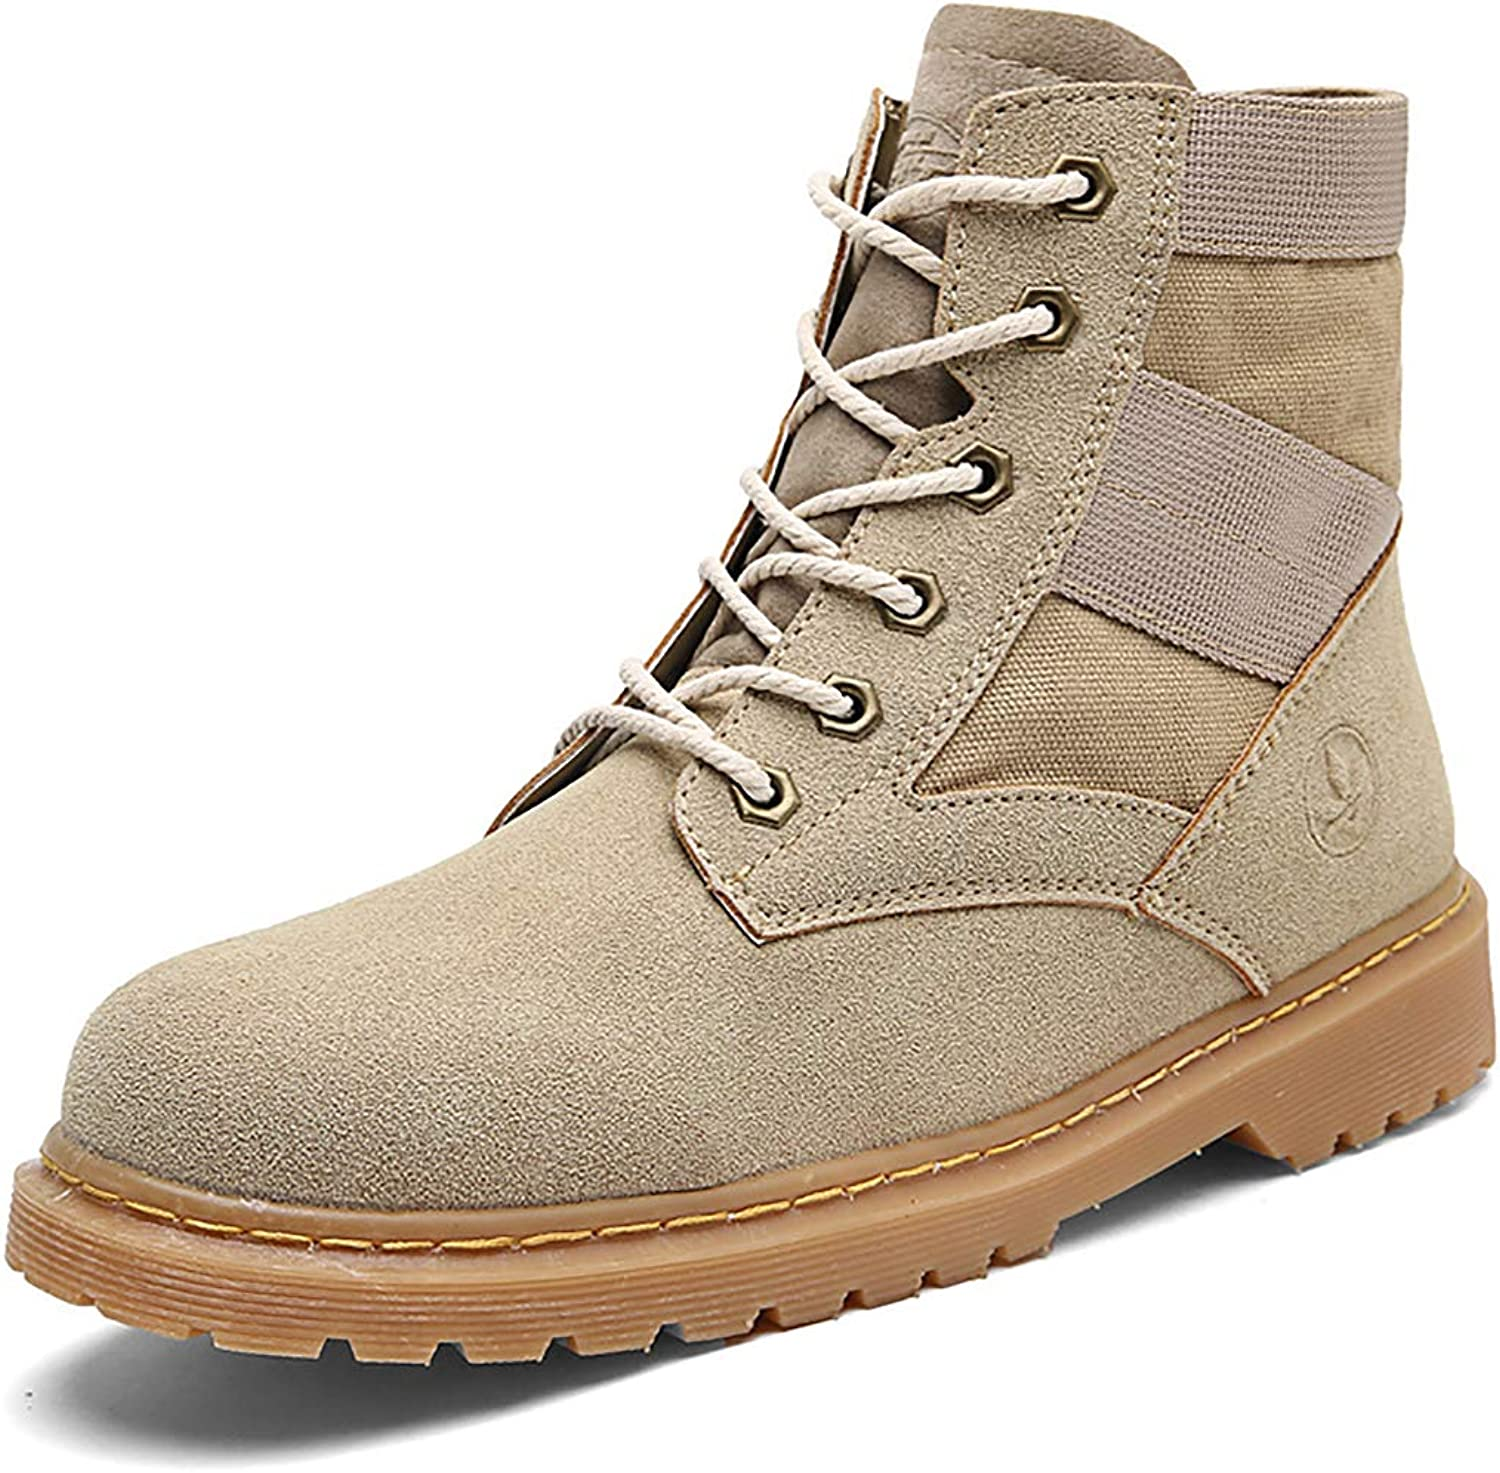 Men's Outdoor Lace UP Round Head Combat Boots Oxford Sole Casual Tooling Boots, Single shoes & Plus Velvet,Brown,41